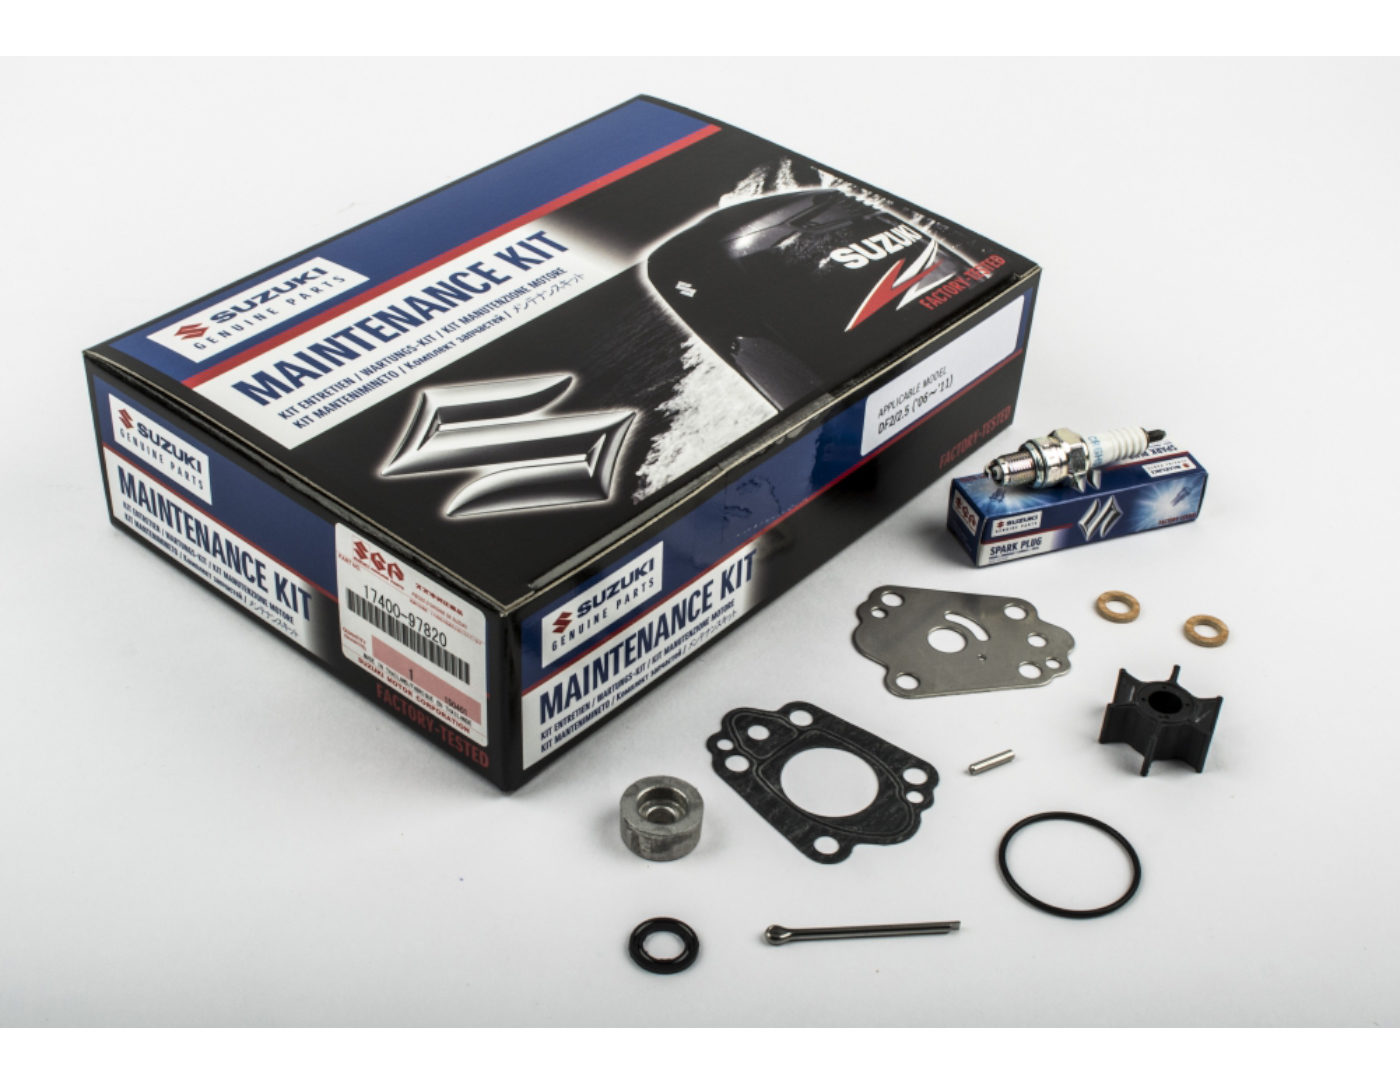 Suzuki DF2/2.5 Marine Maintainance Service Kit ('06-'11) Contents